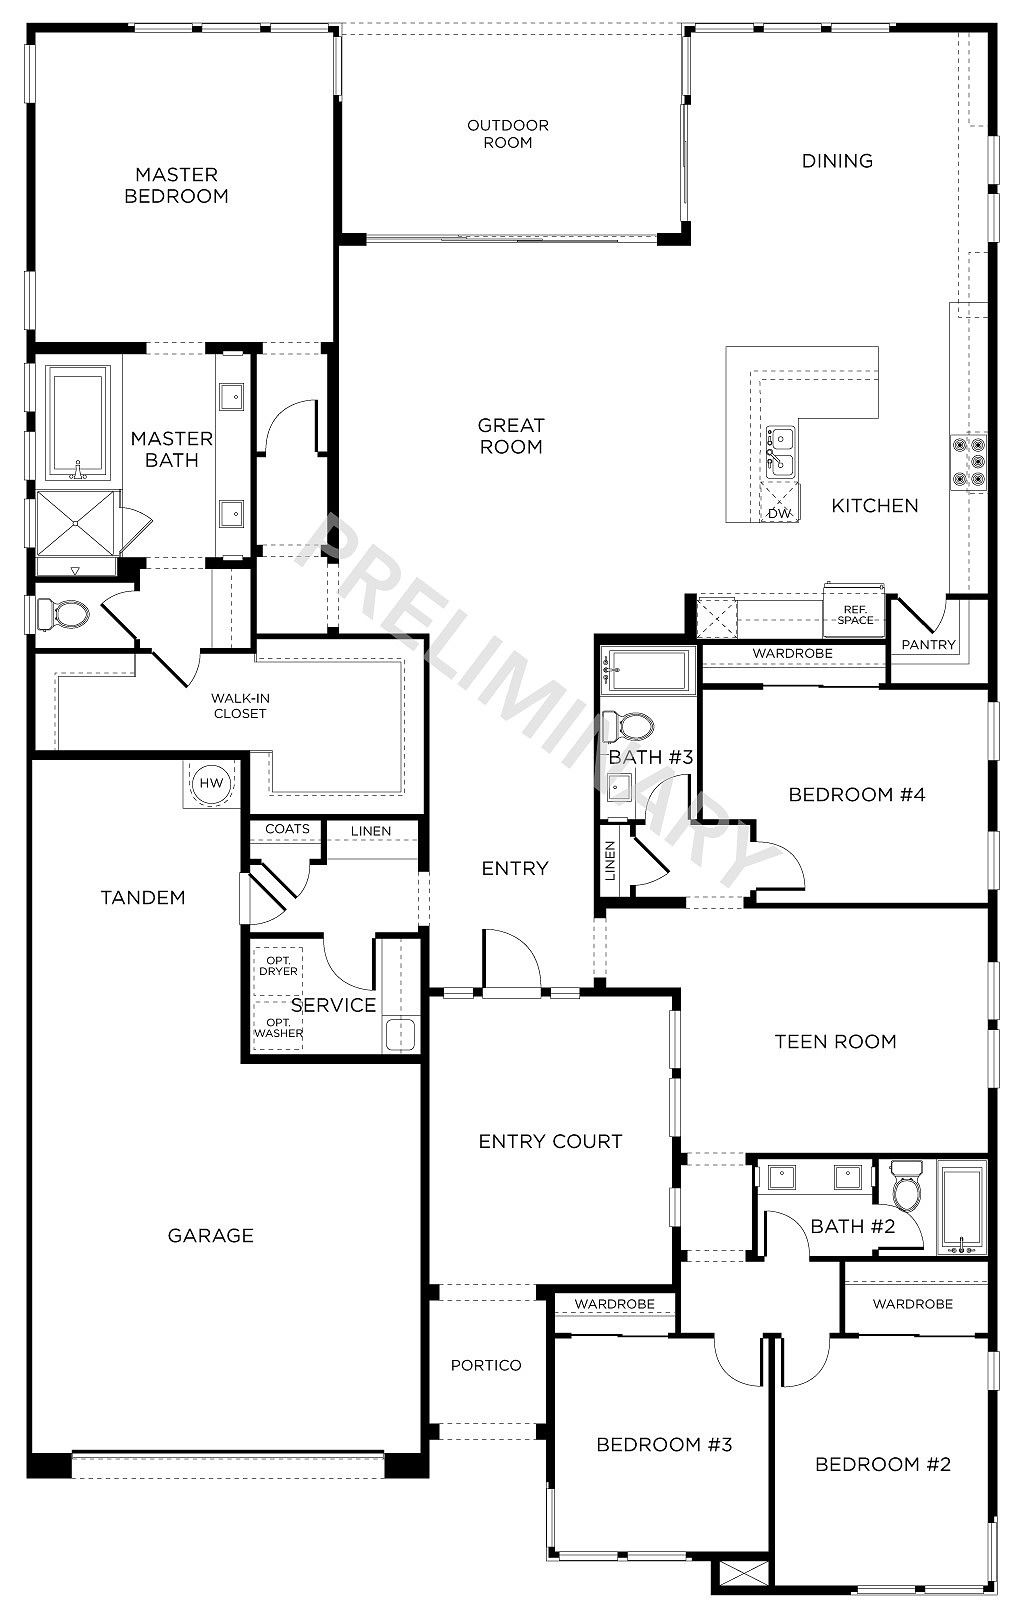 Floor Plan 2 4 Beds 3 Baths Single Story New Homes